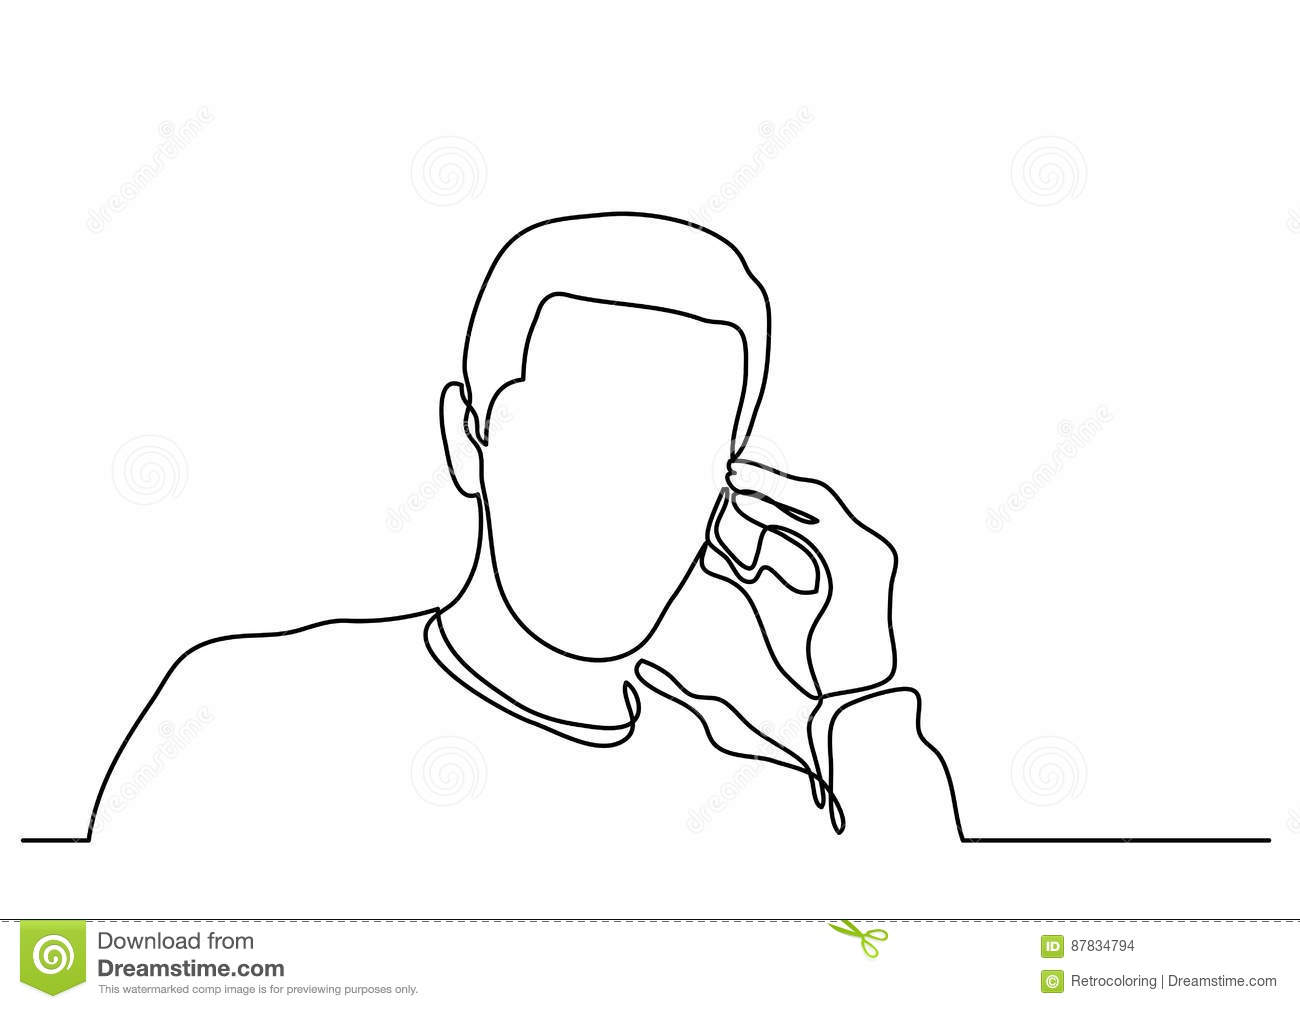 Line Drawing Man : Continuous line drawing of man talking on cell phone stock